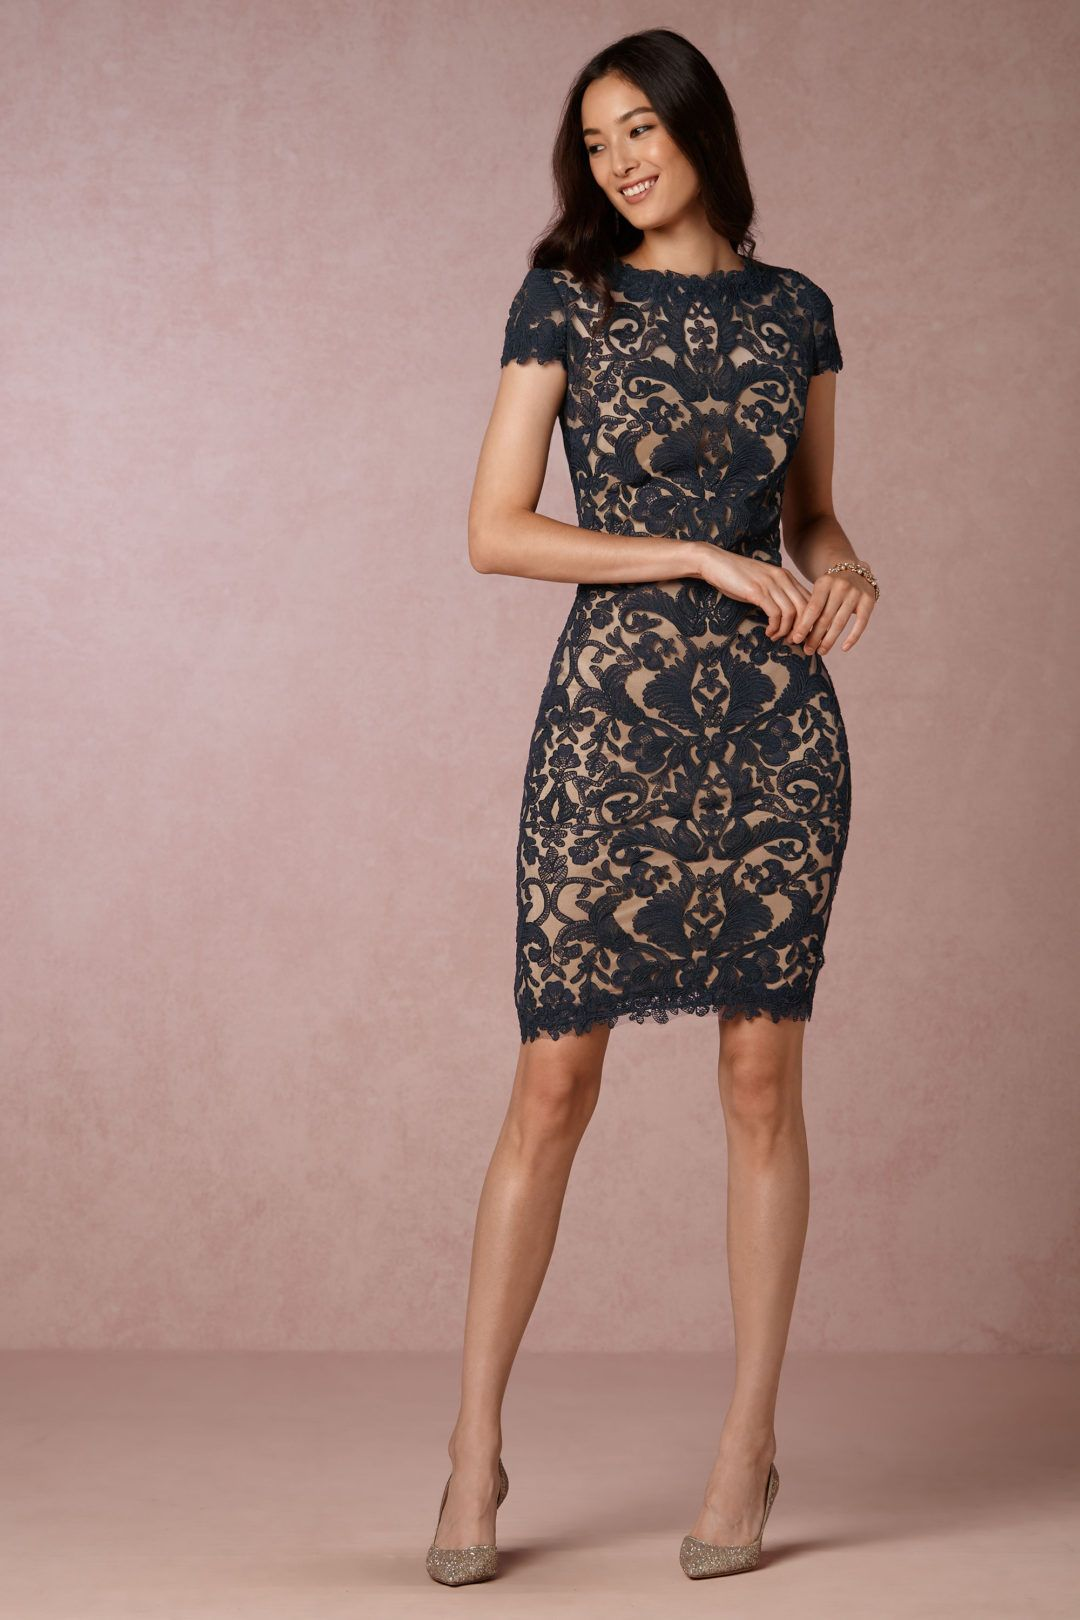 New Party Dresses for Fall and Winter 2016 | Wedding Guest ...